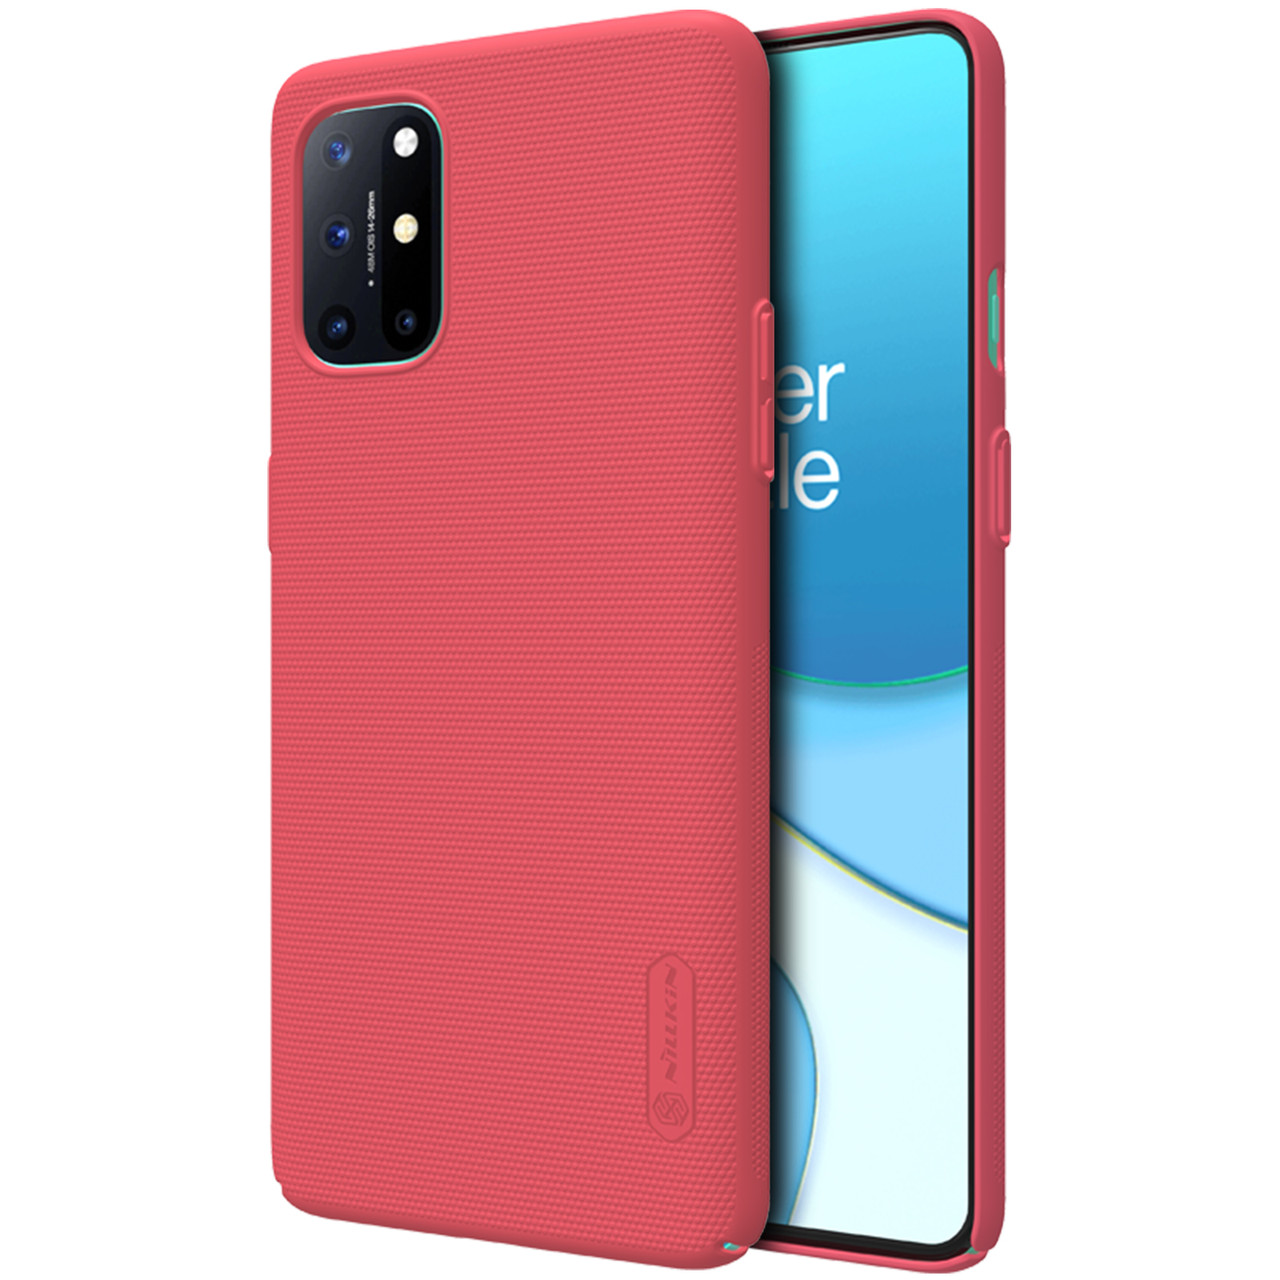 Nillkin Oneplus 8T Super Frosted Shield Red Чехол Накладка Бампер